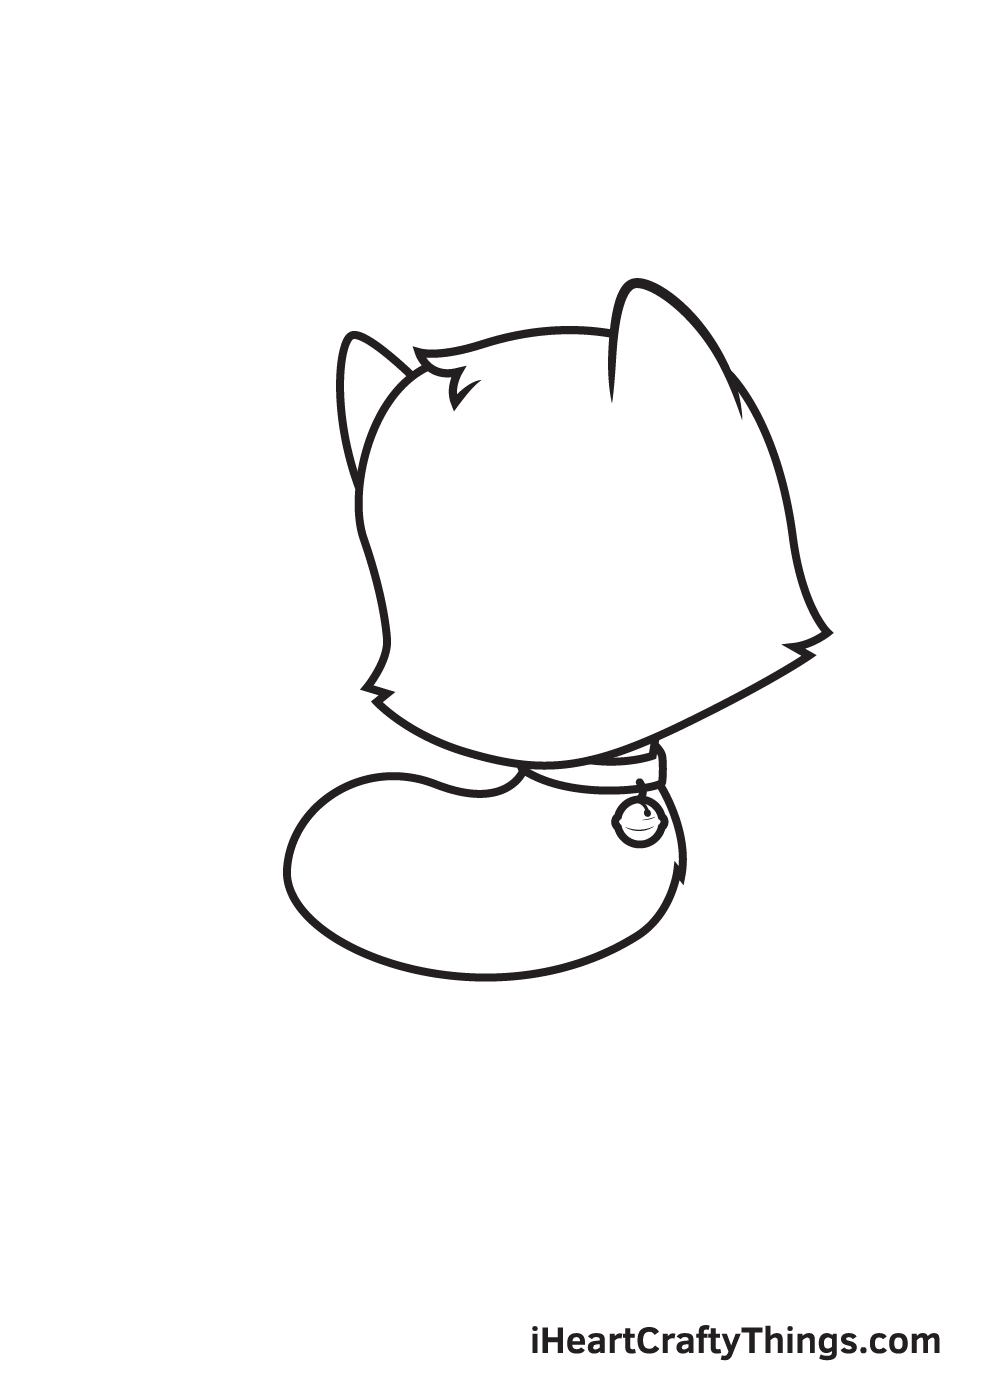 cat drawing – step 5